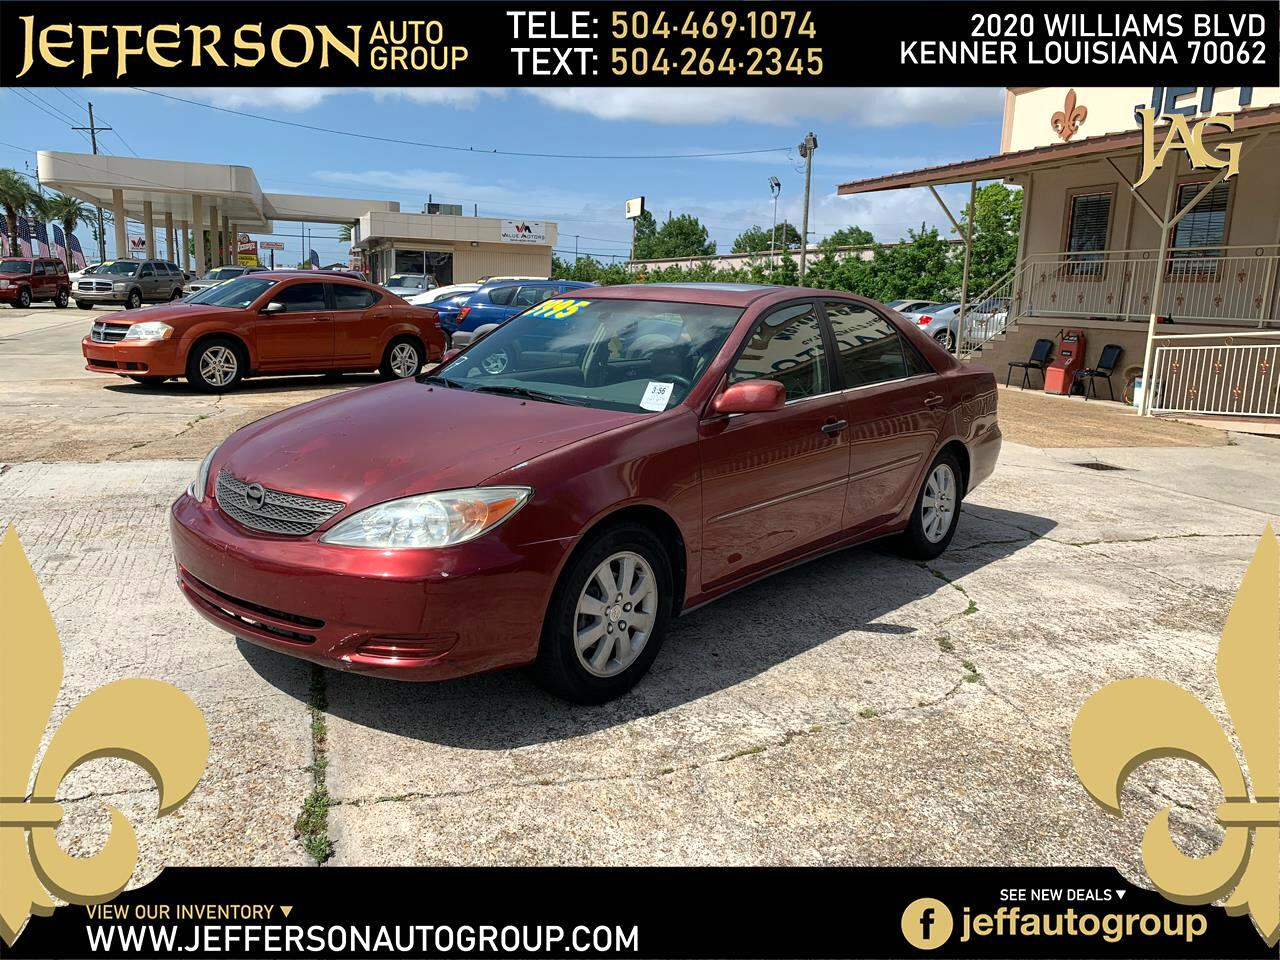 2002 Toyota Camry 4dr Sdn XLE Auto (Natl)